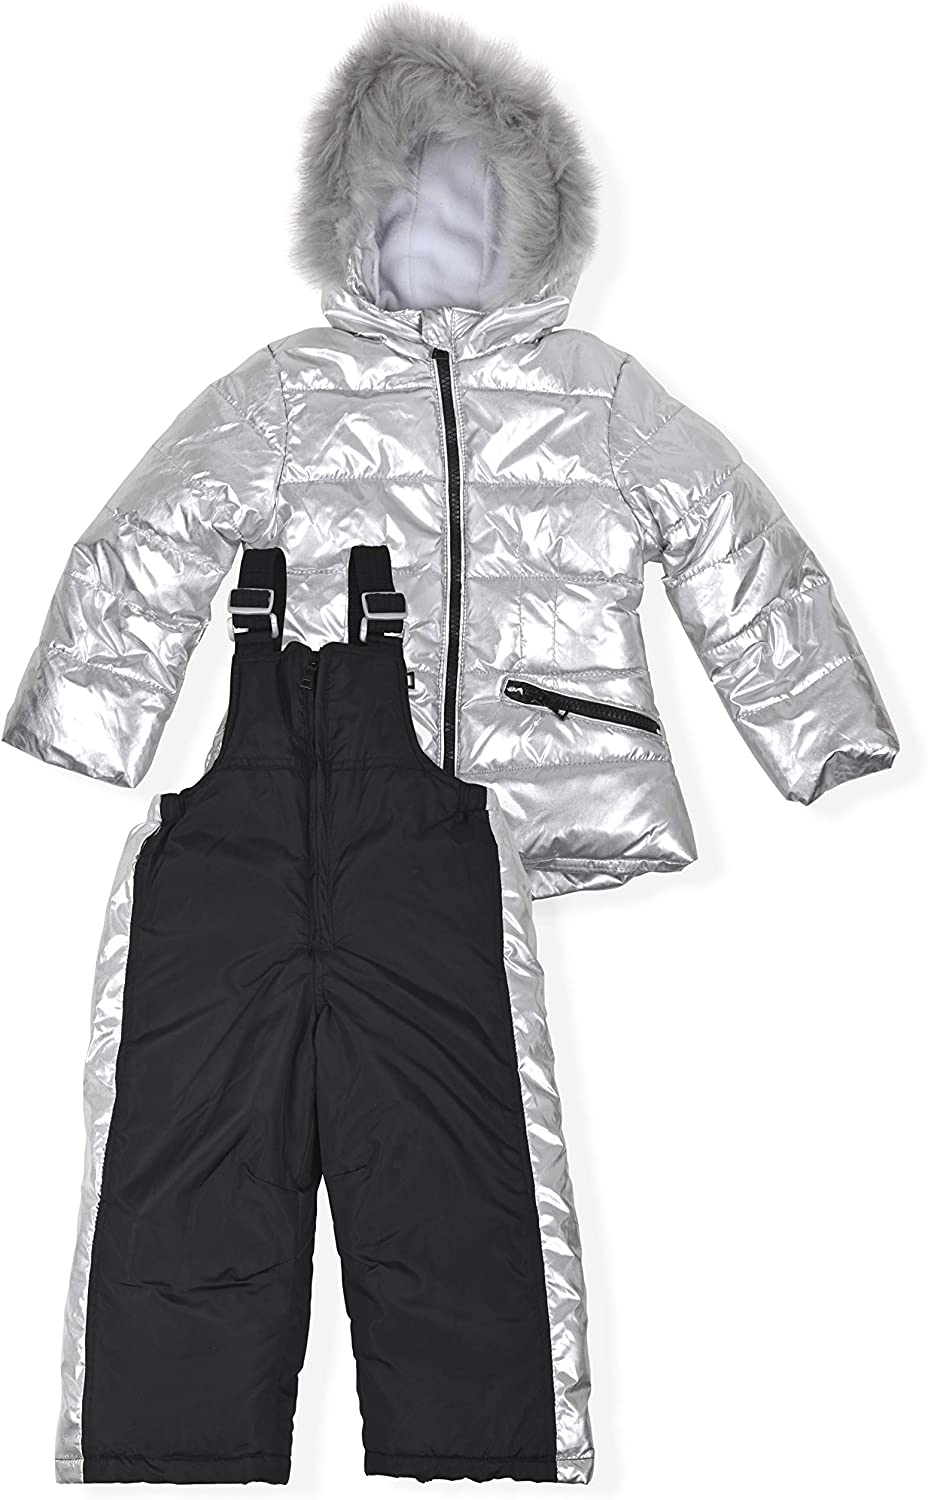 supreme Arctic Quest Infant Toddler and Little Suit Puf Max 83% OFF Girls with Snow